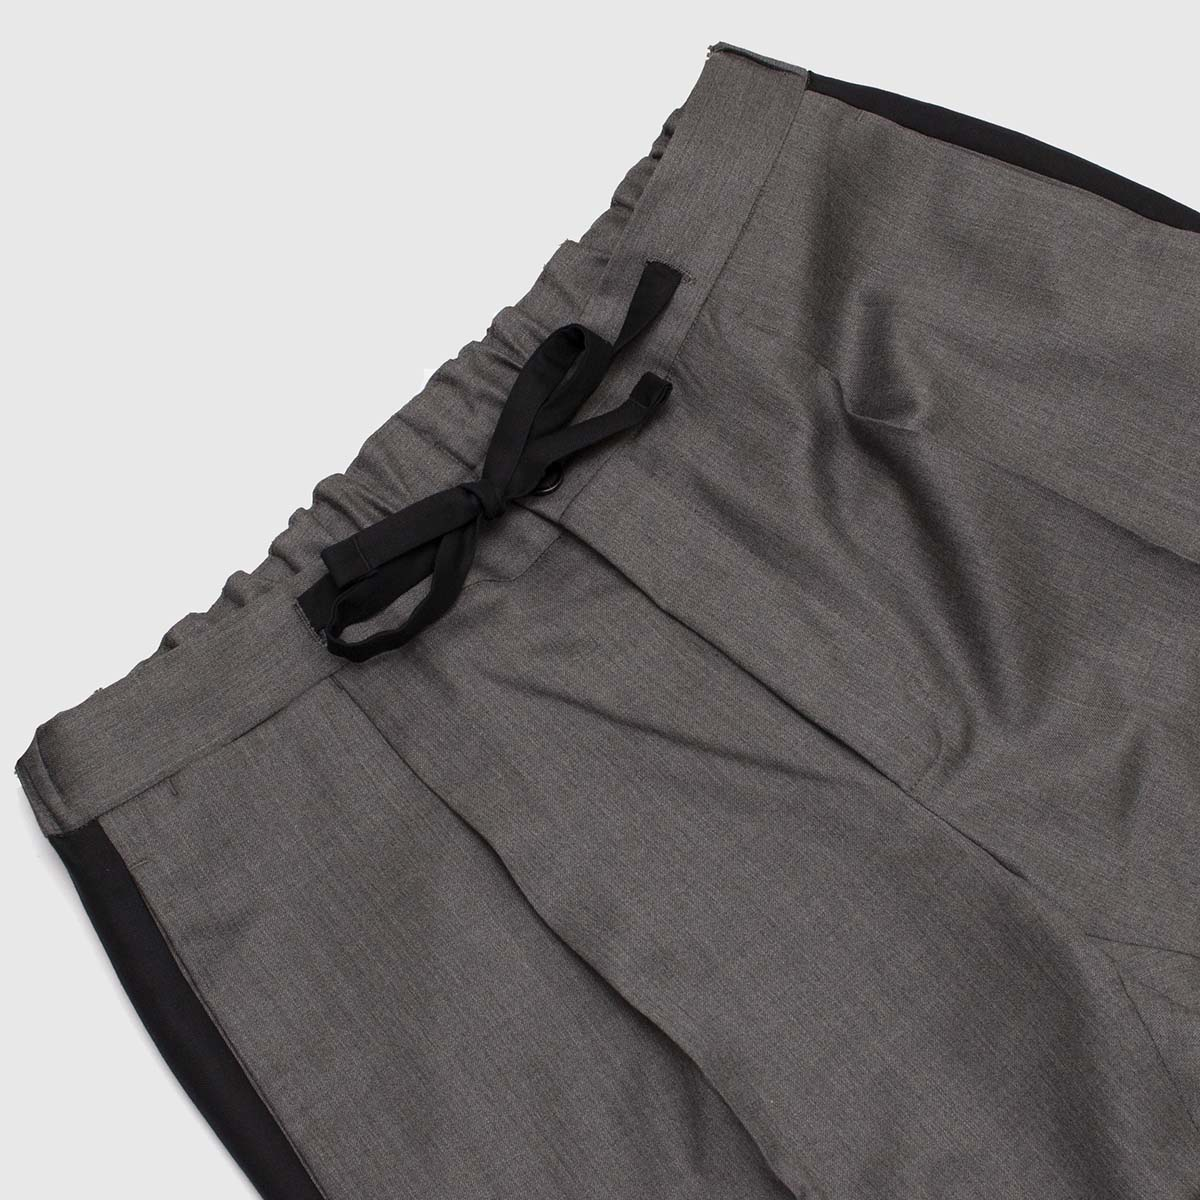 Gray Double pleats trousers alcantara finished